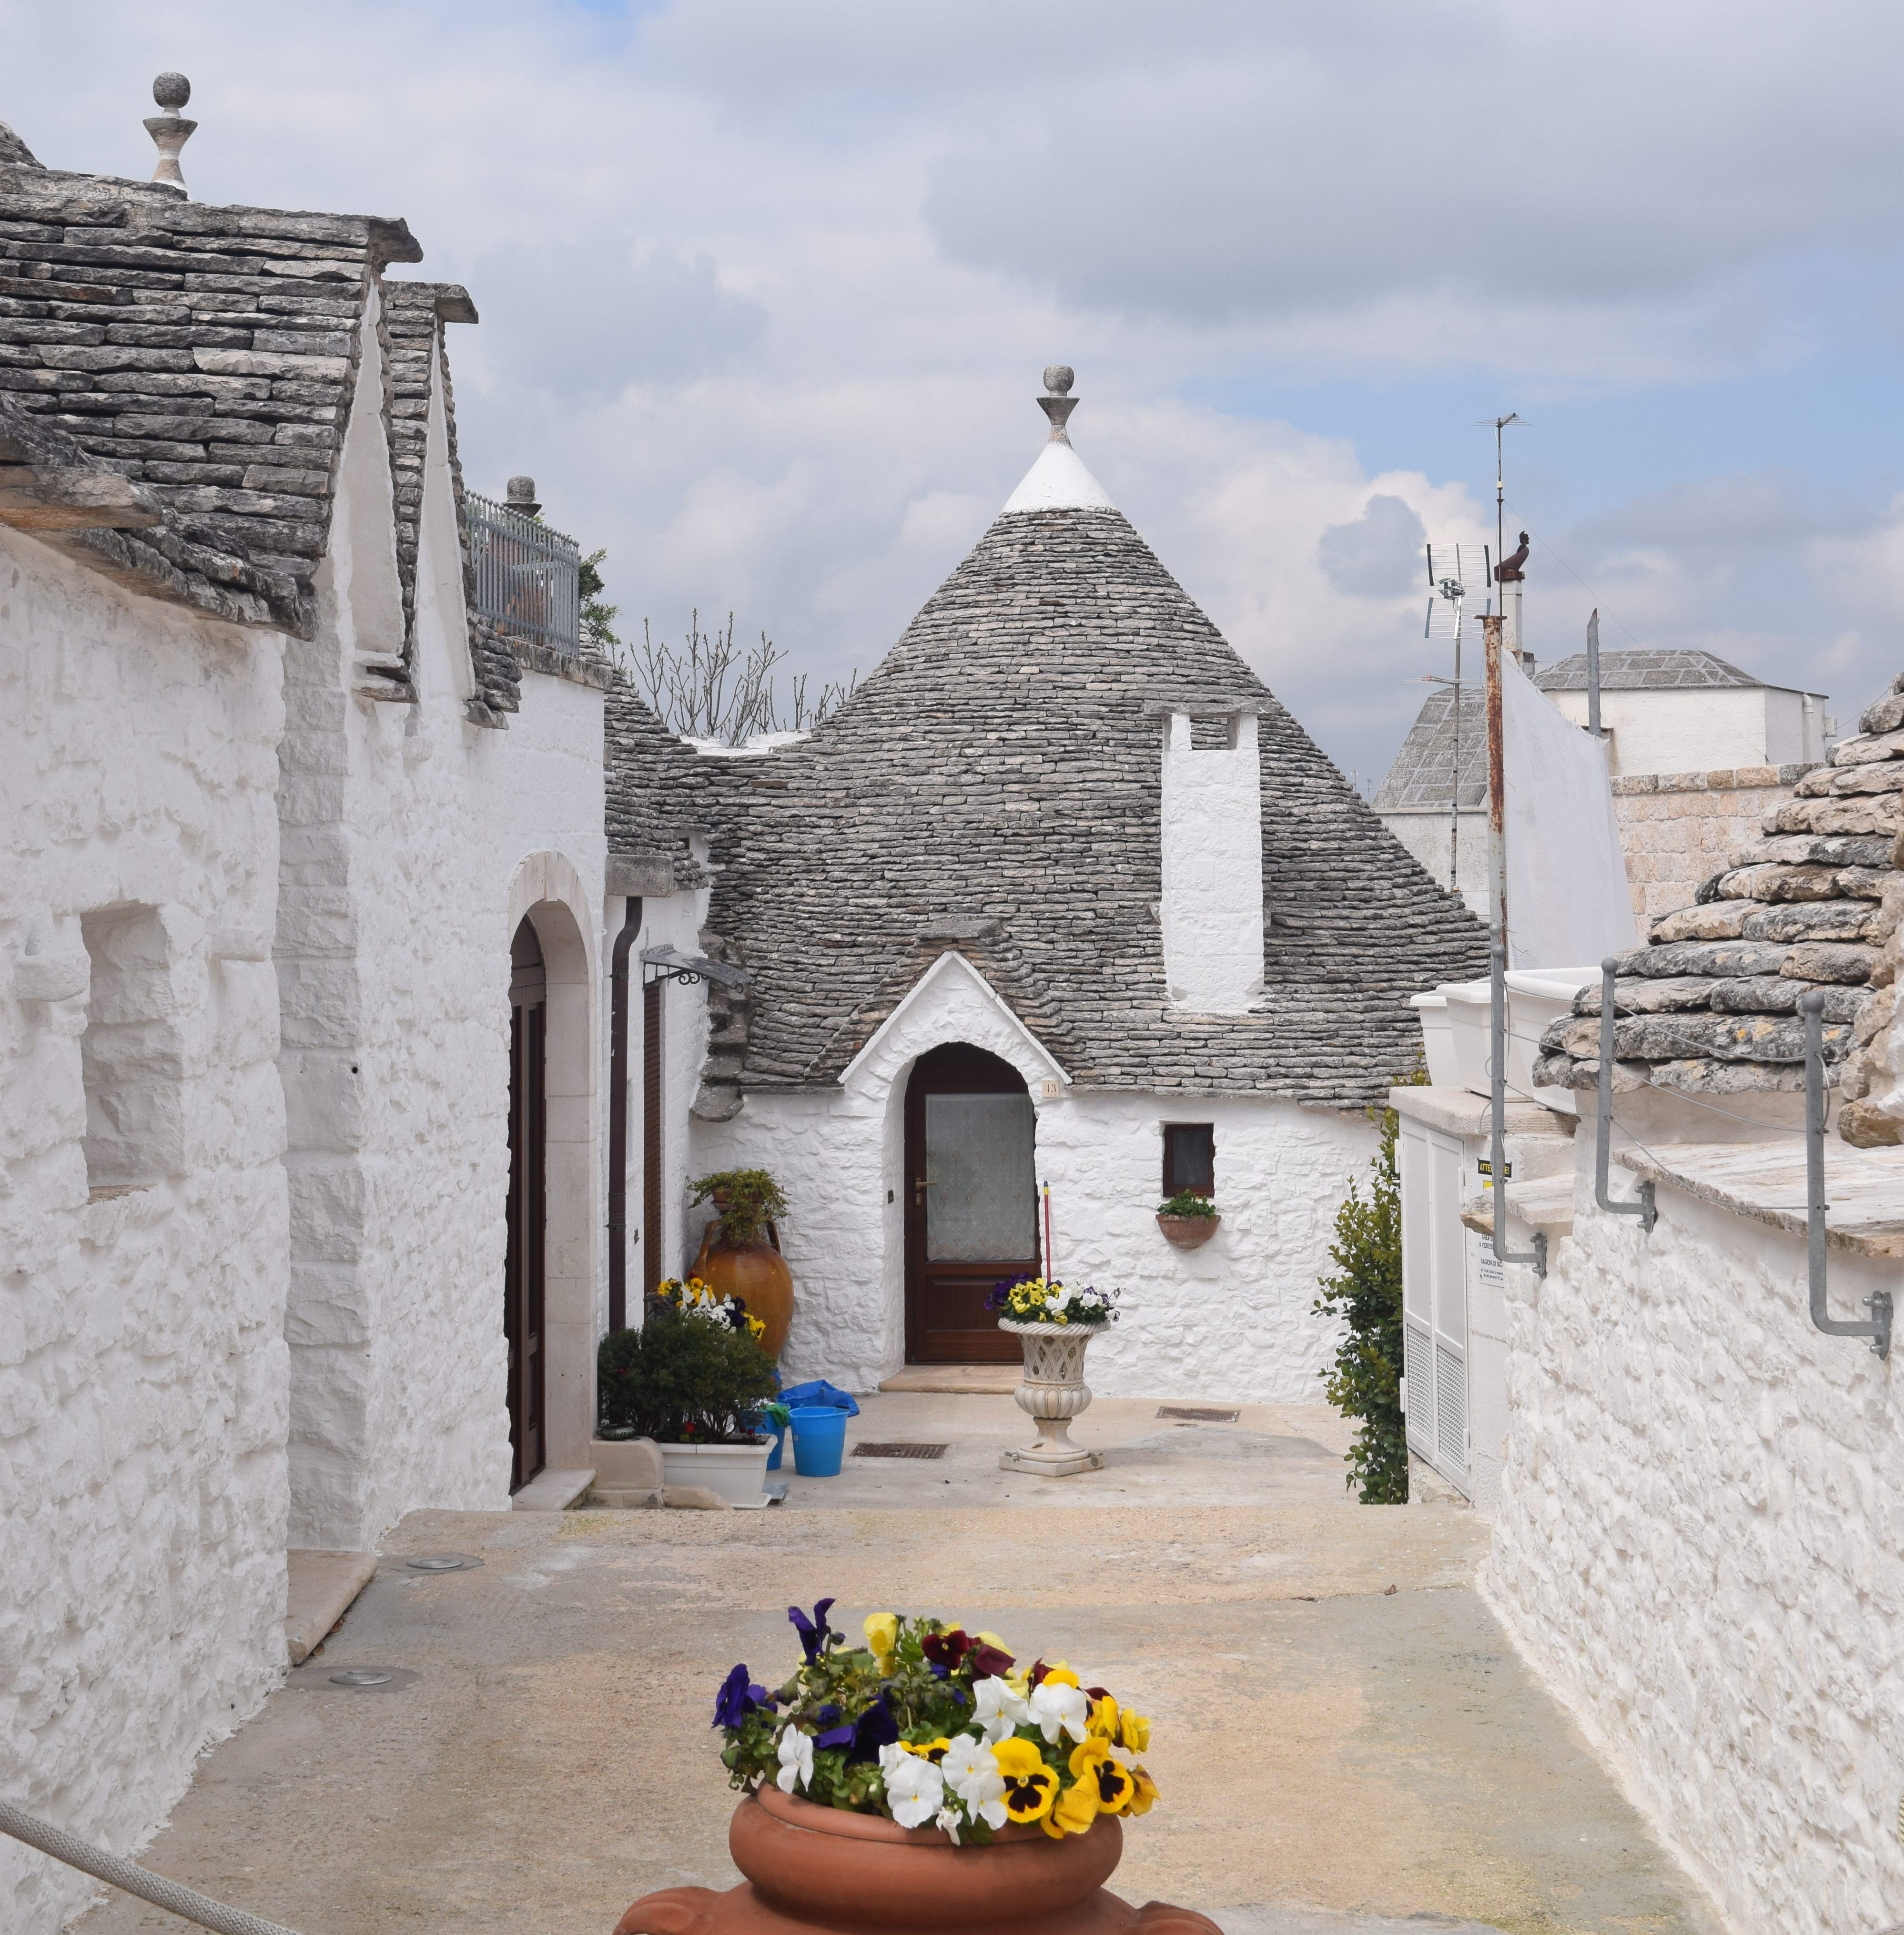 Alberobello, Italy is such an amazing place. A UNESCO World Heritage site and a must see when visiting Puglia. ouritalianjourney.com